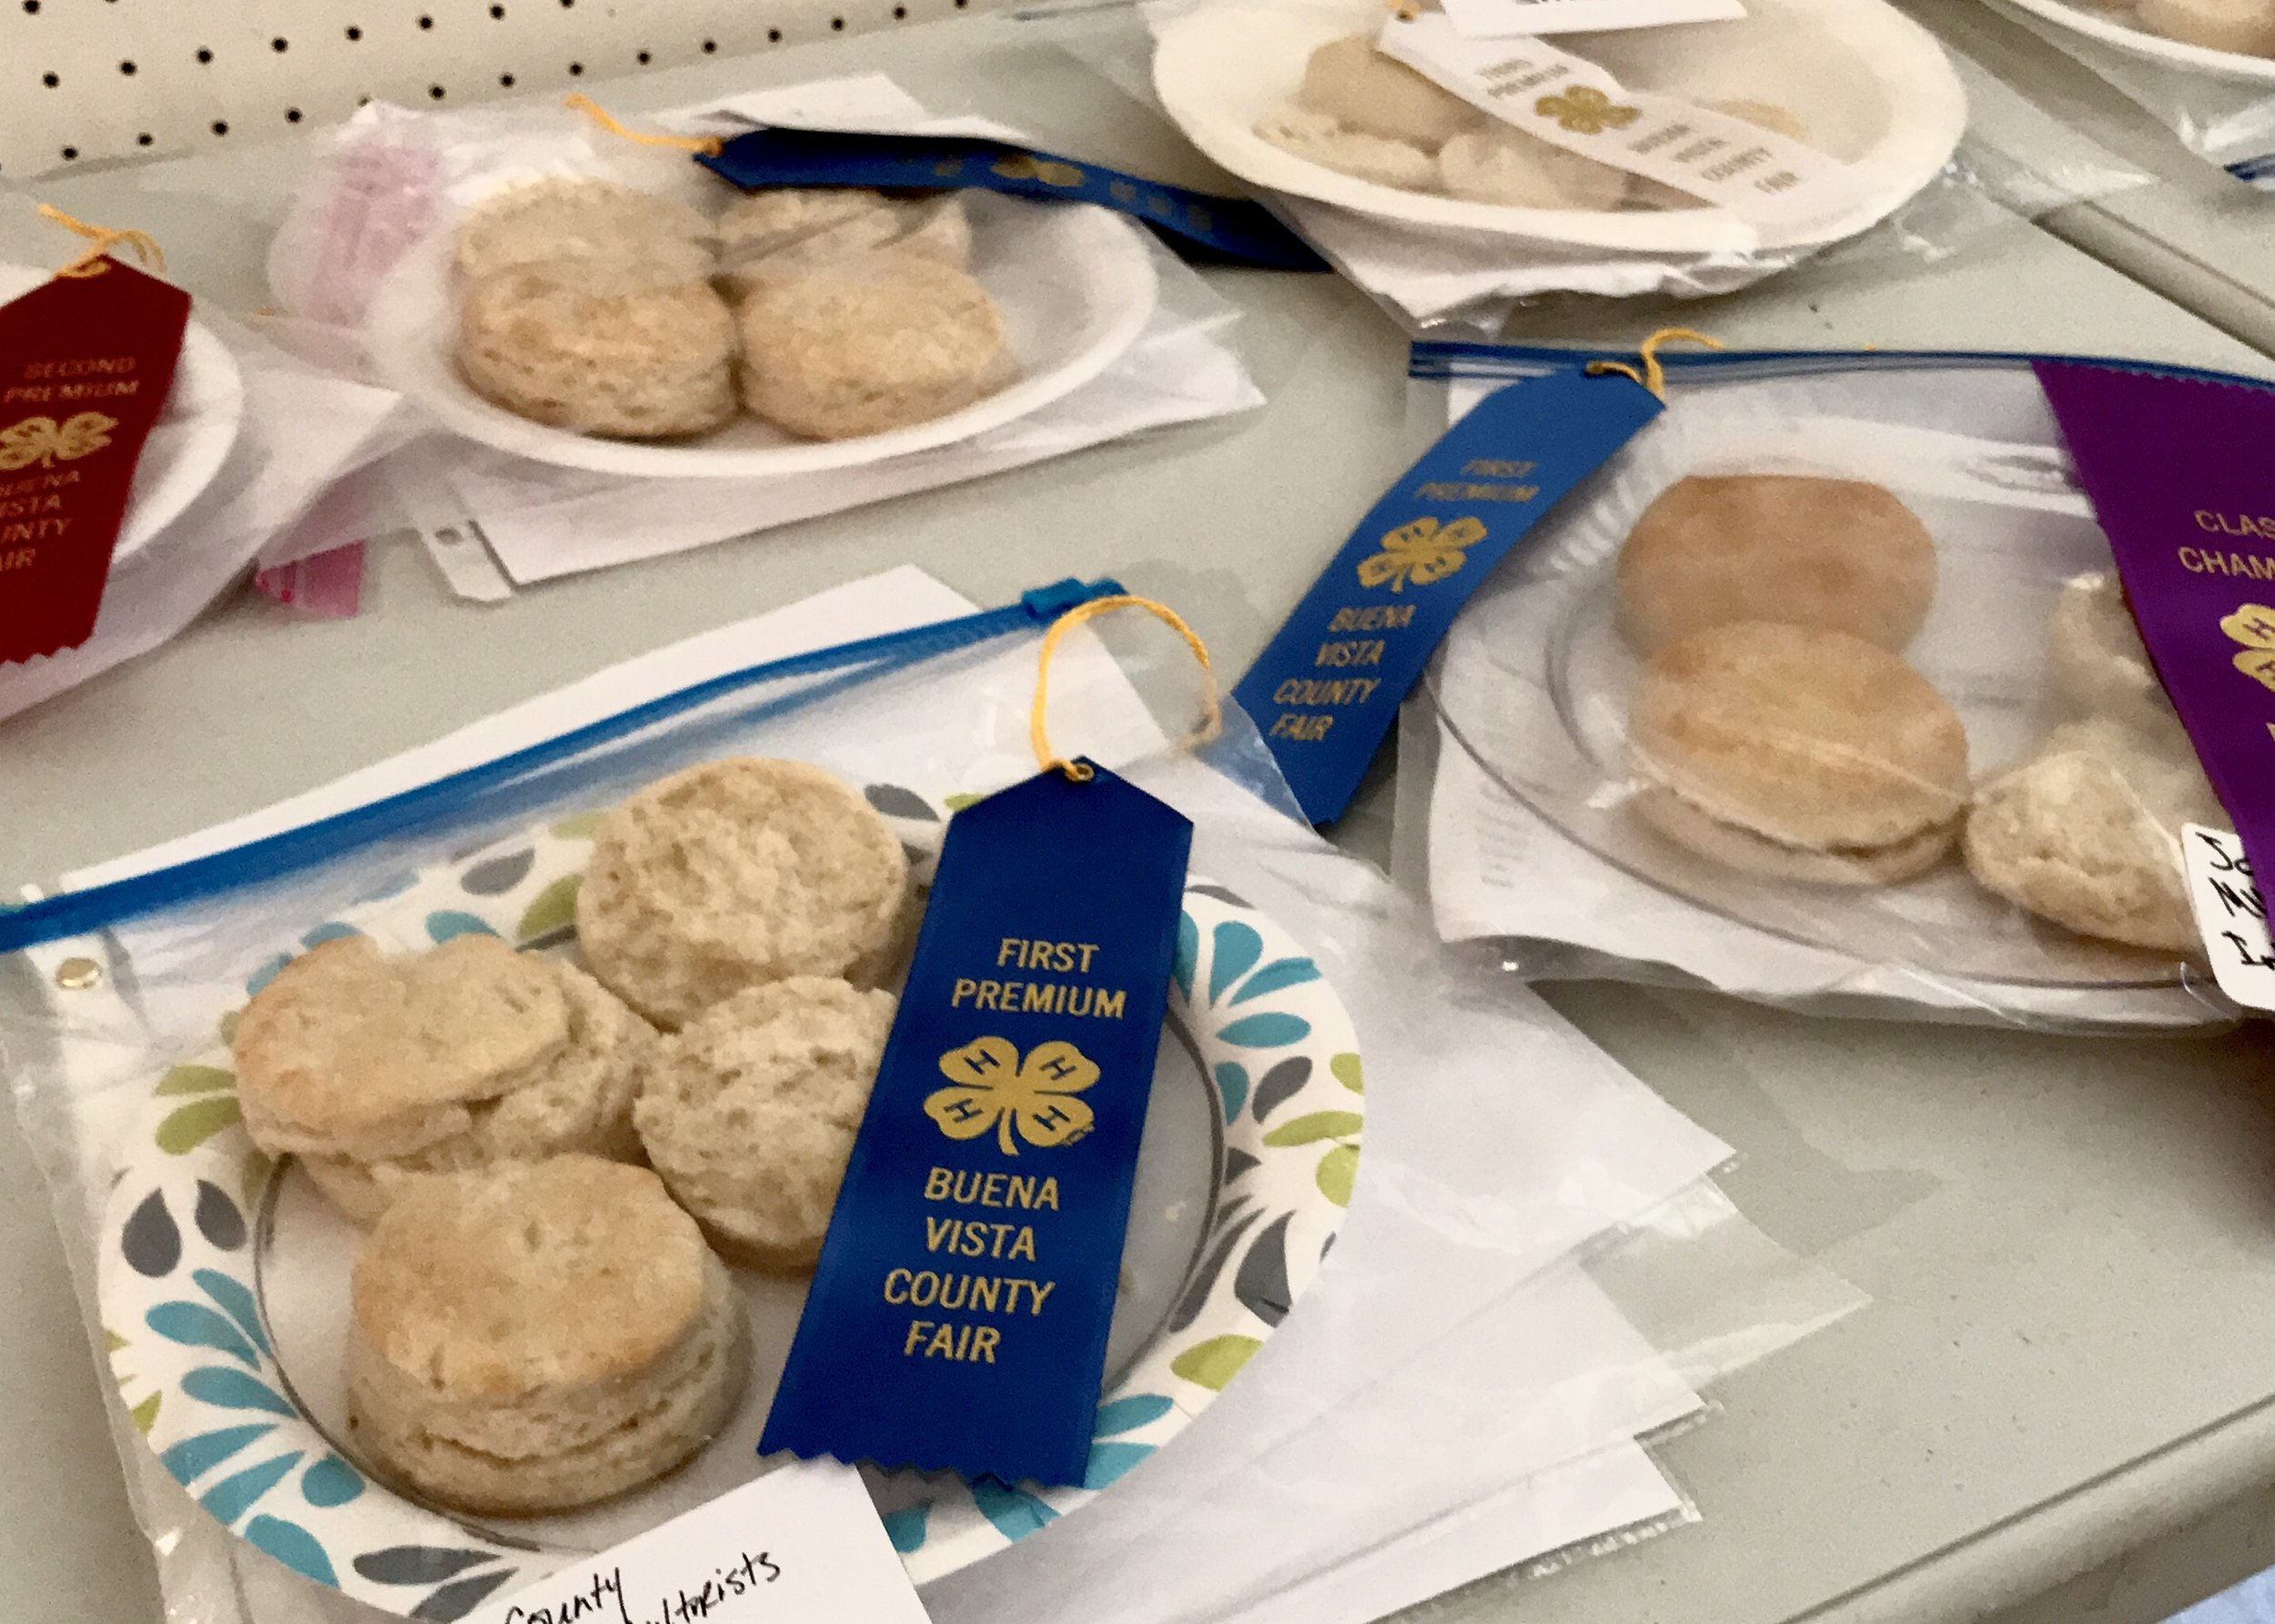 Gold Medal Classic Biscuits at the Buena Vista County 4-H Recipe Challenge. Photo credit: Anita McVey